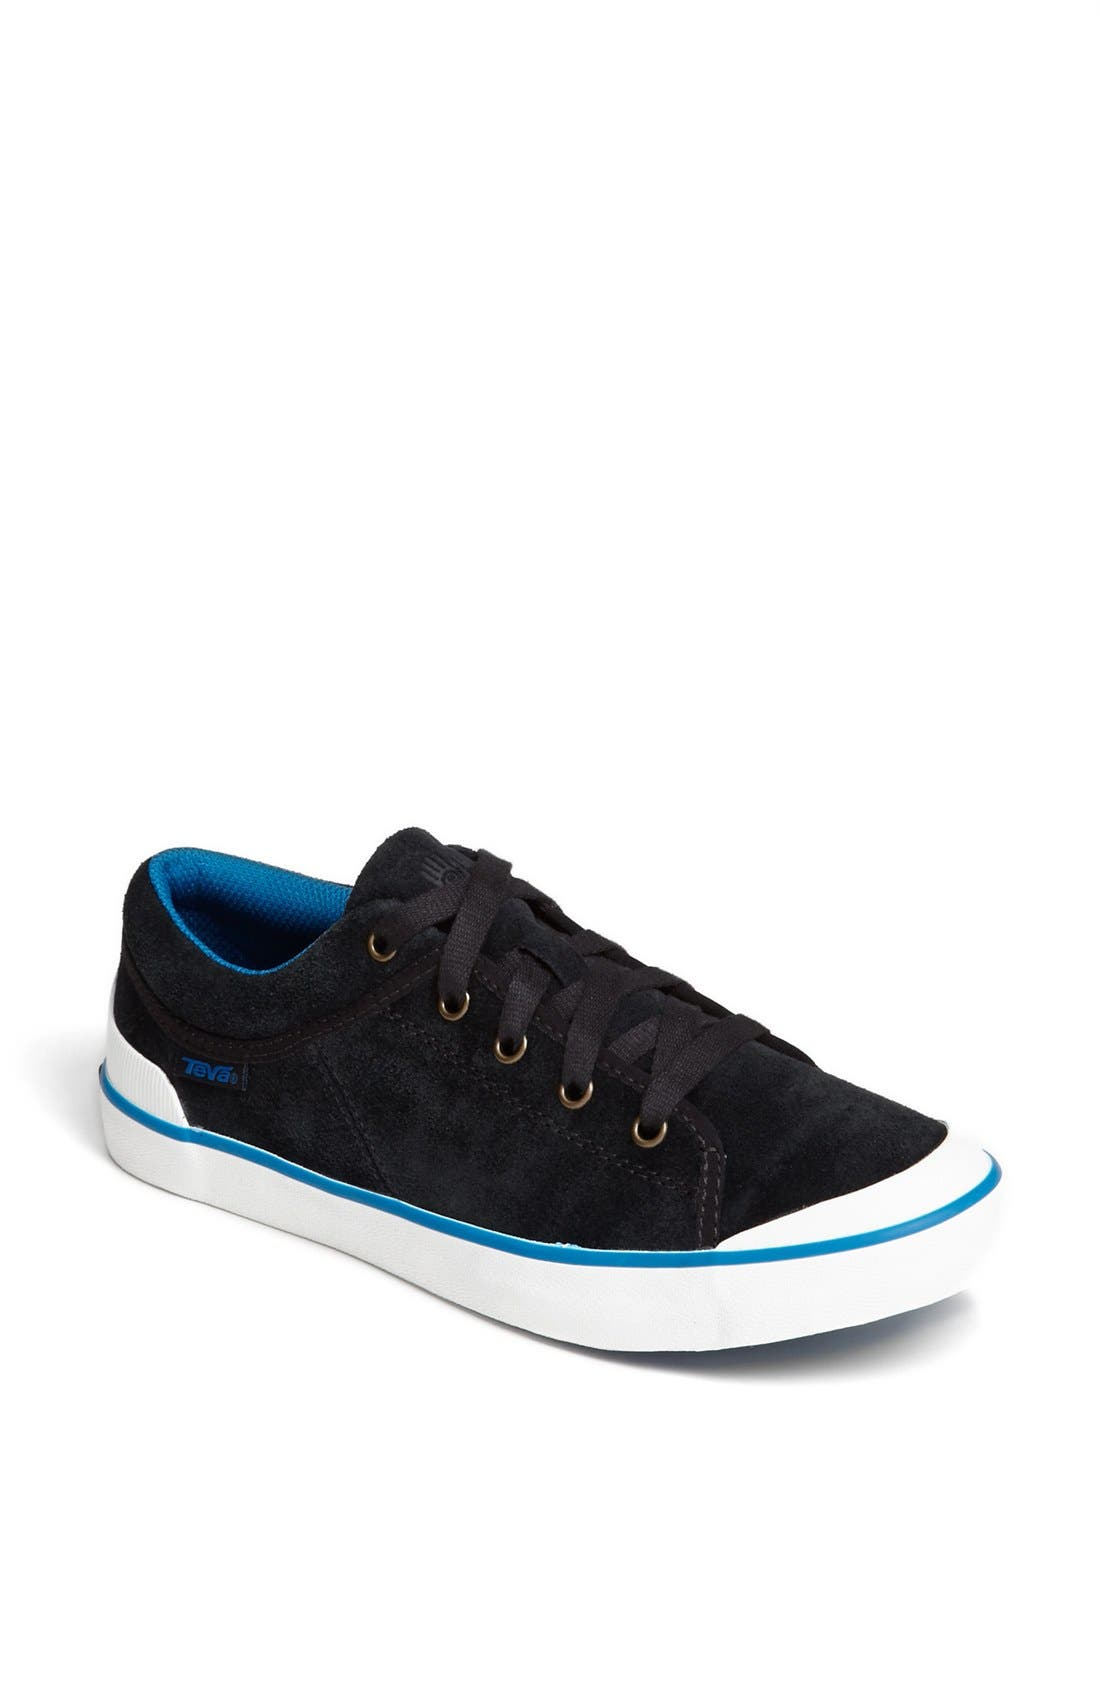 'Freewheel' Sneaker,                         Main,                         color, Black/ Blue